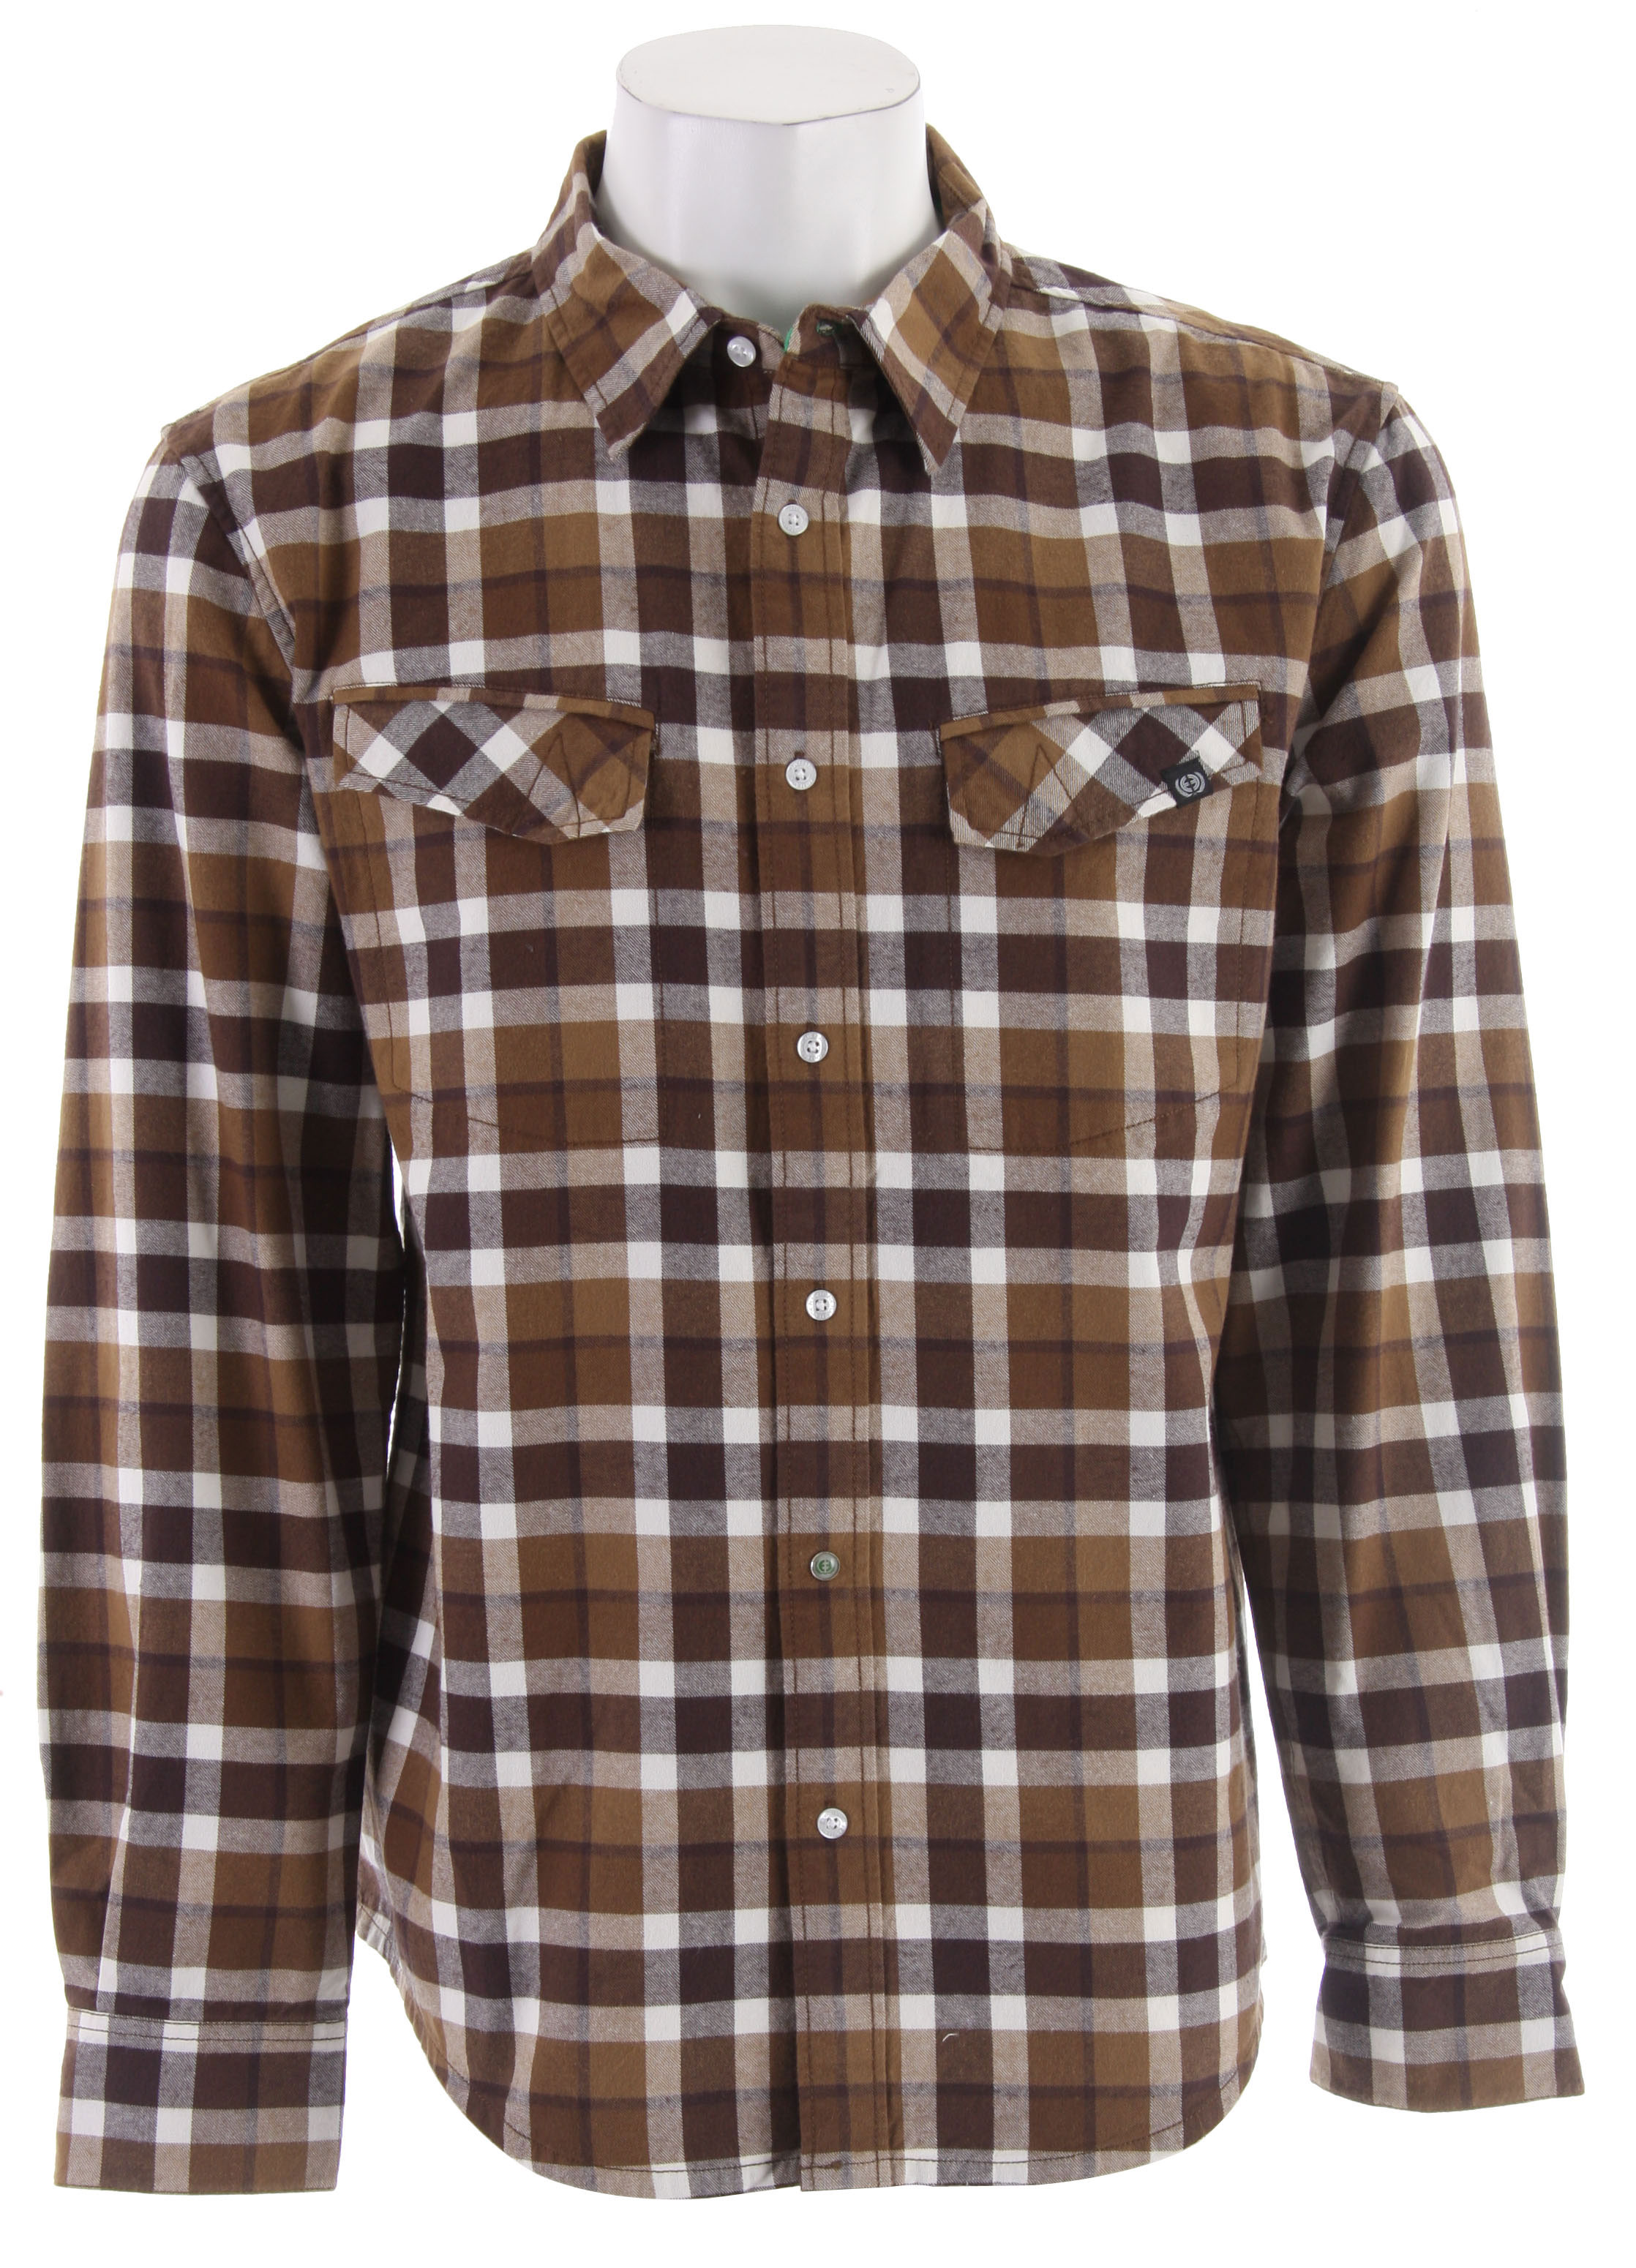 Planet Earth Linier Flannel Shirt Brown - $25.48